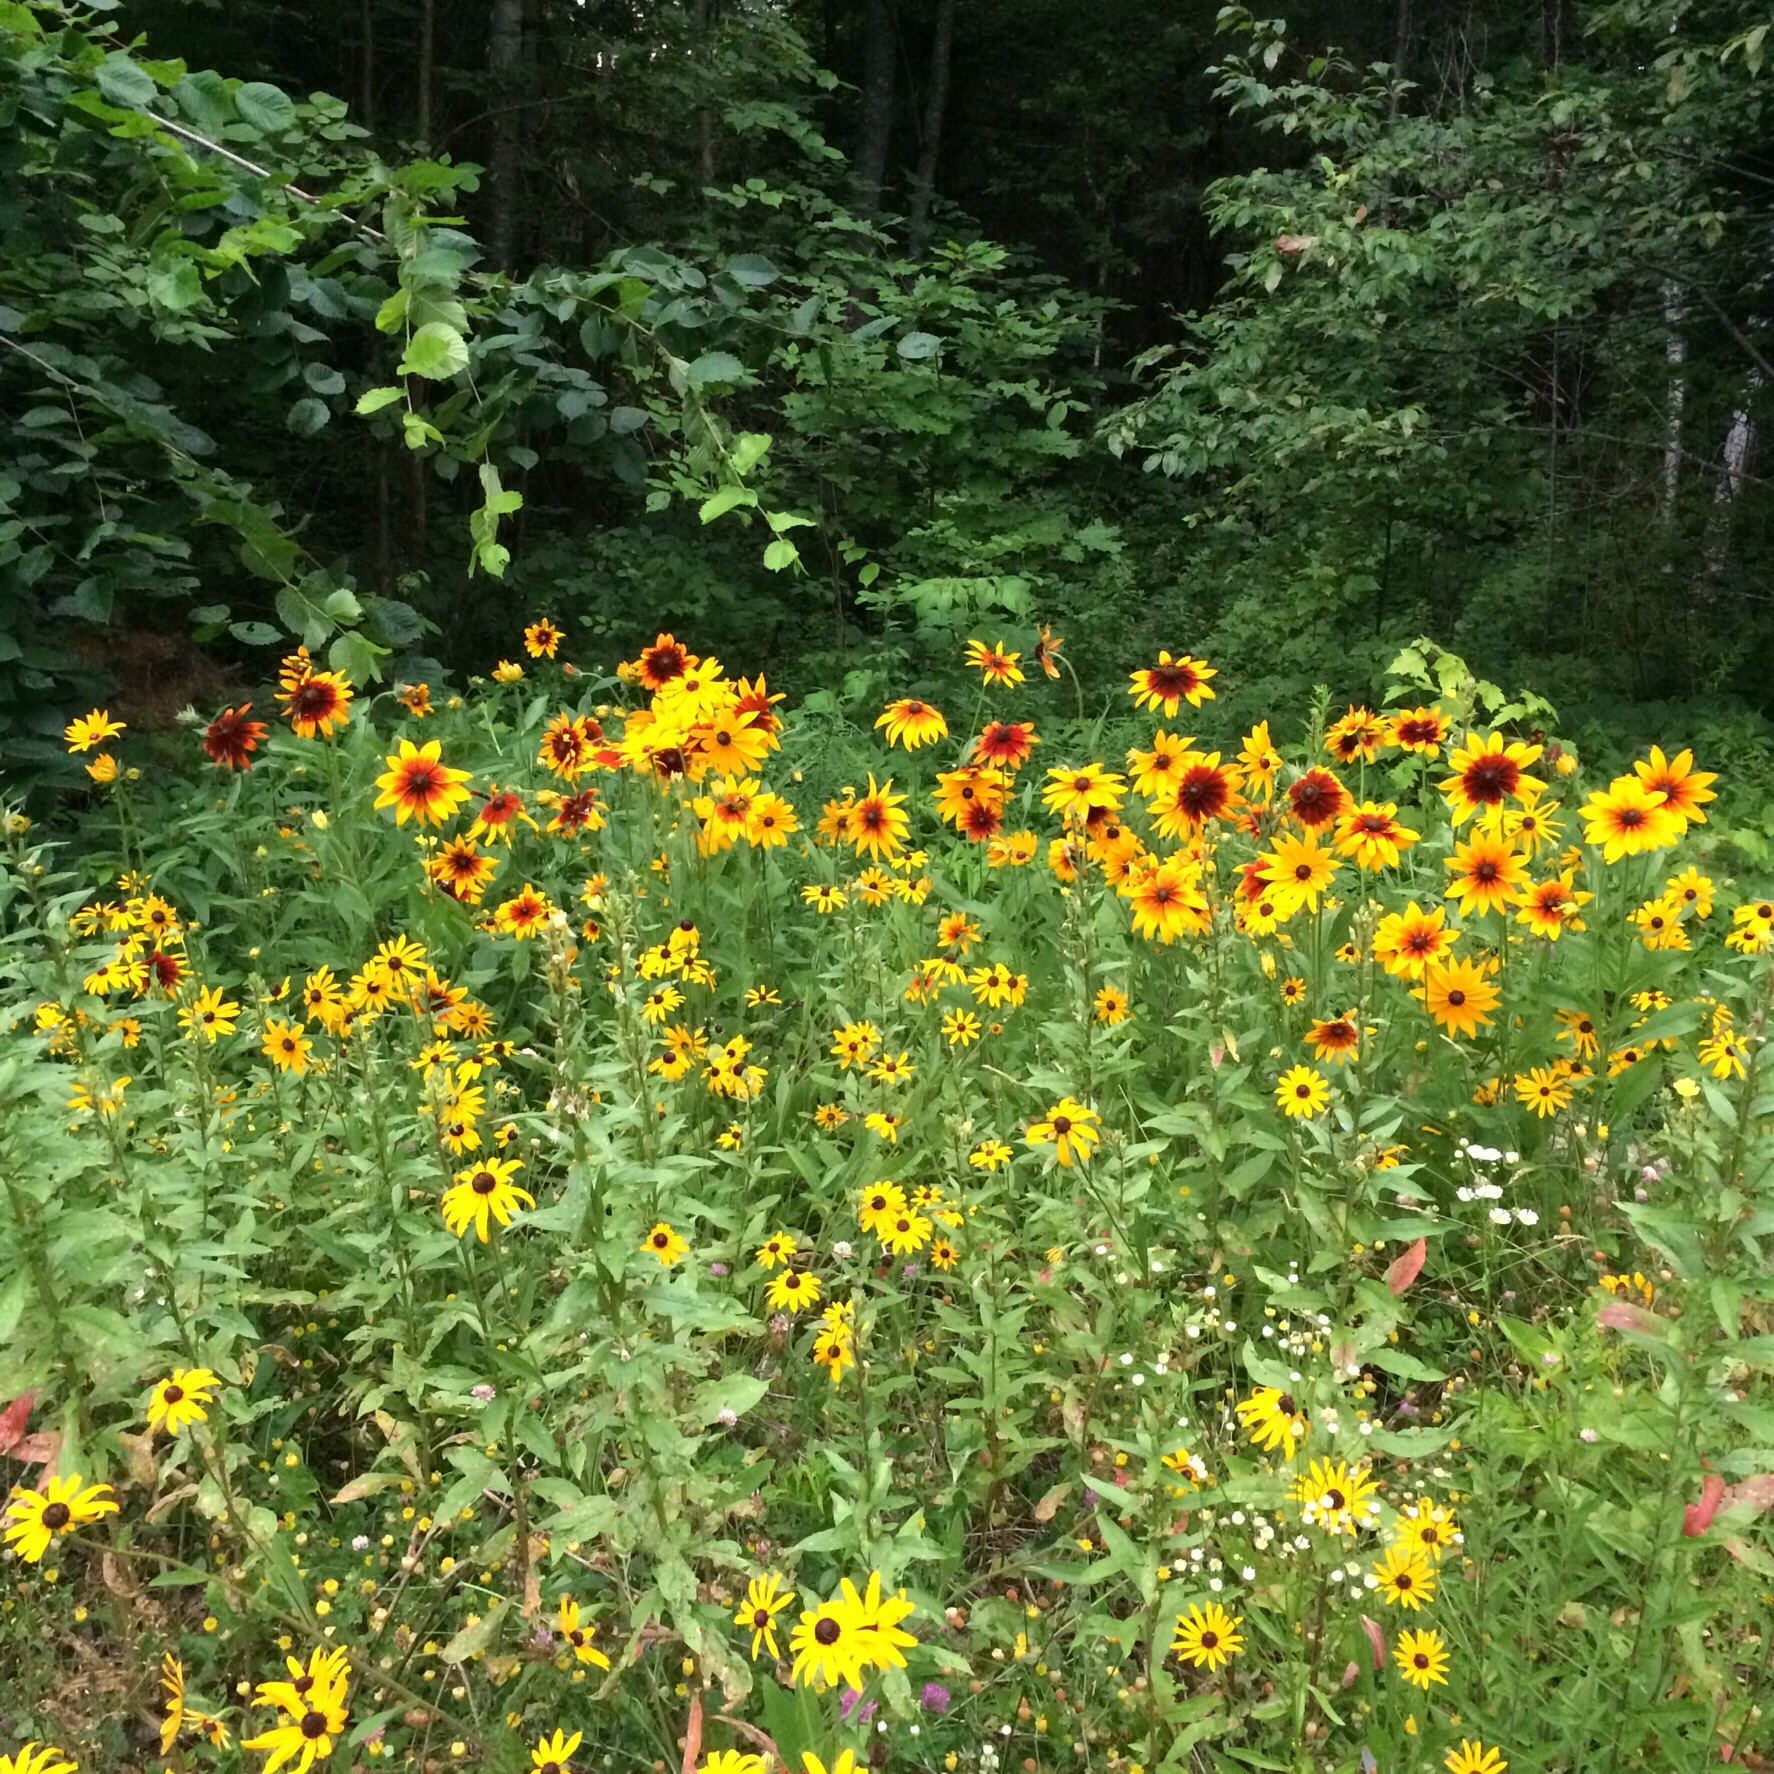 More Black-eyed Susans and pretty little sunflowers at the back of my parents' garden.